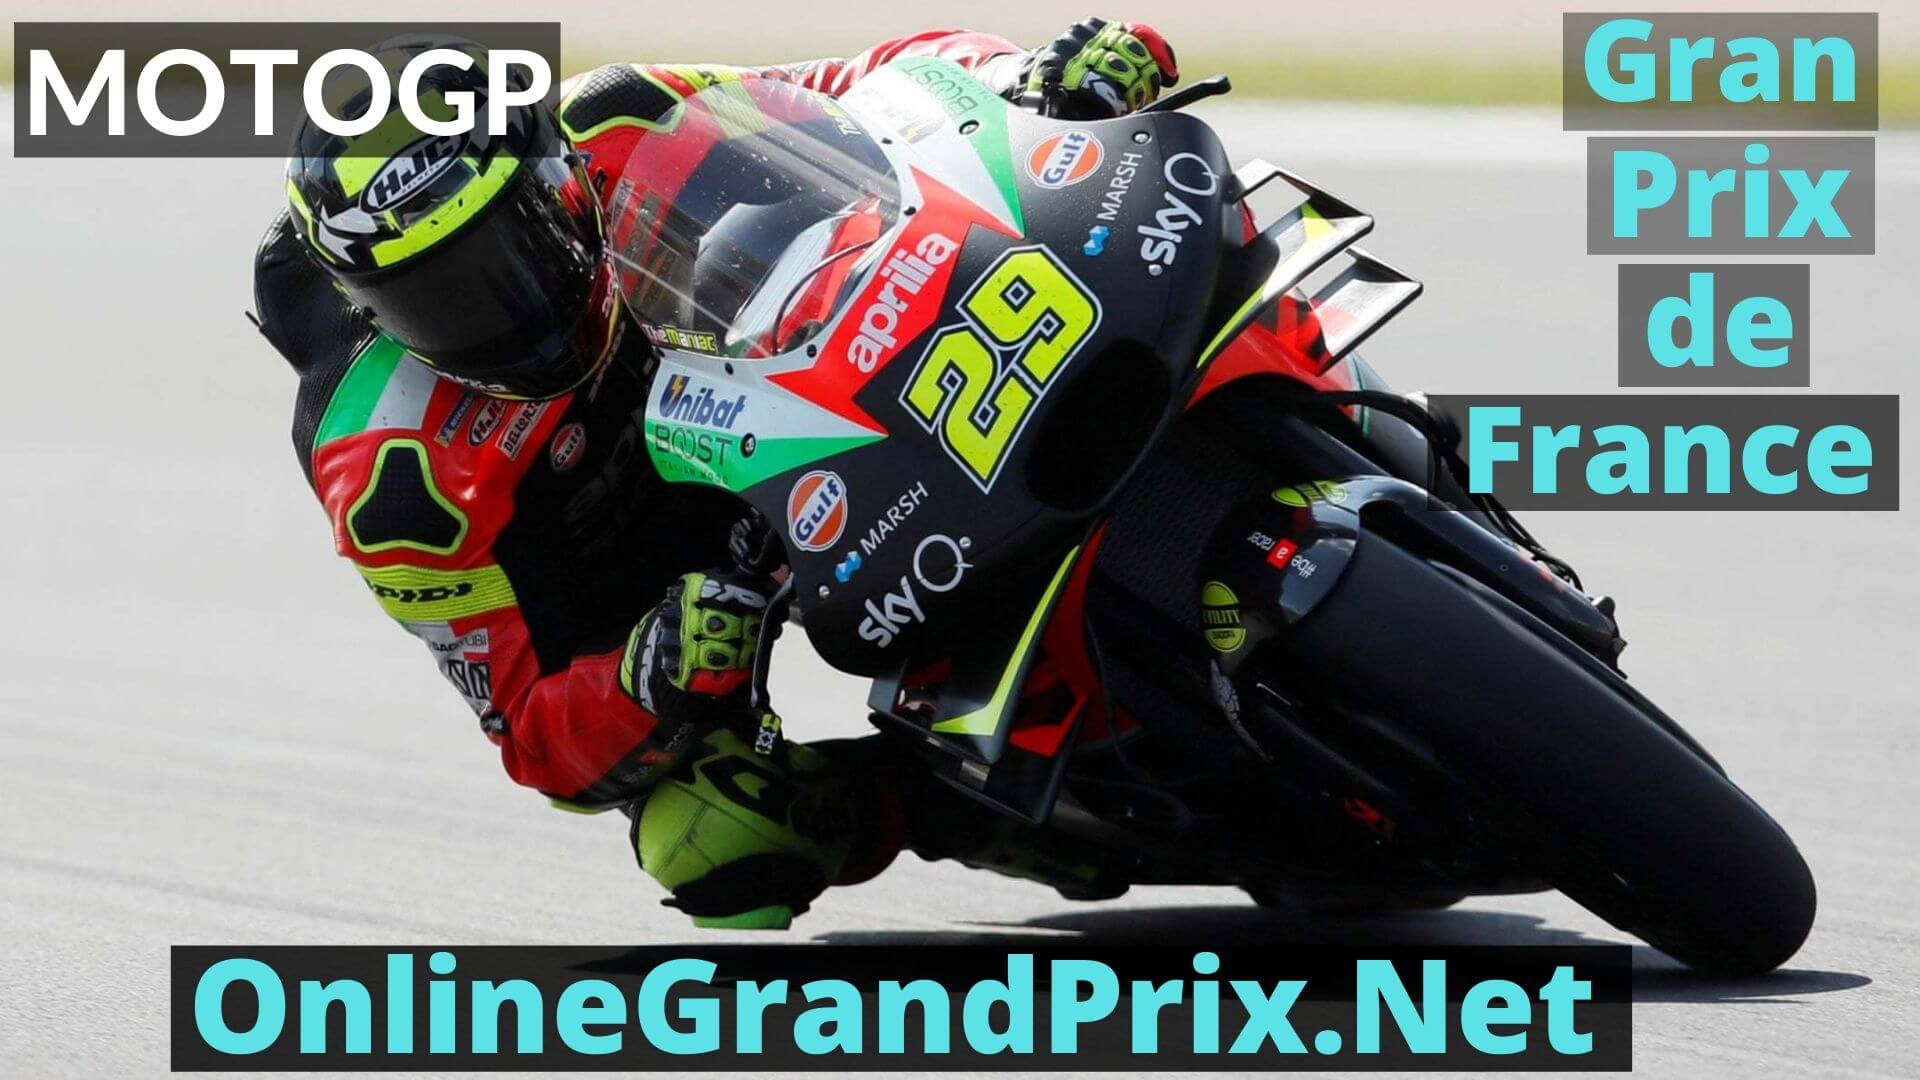 Grand Prix de France Live Stream 2020 | MotoGP